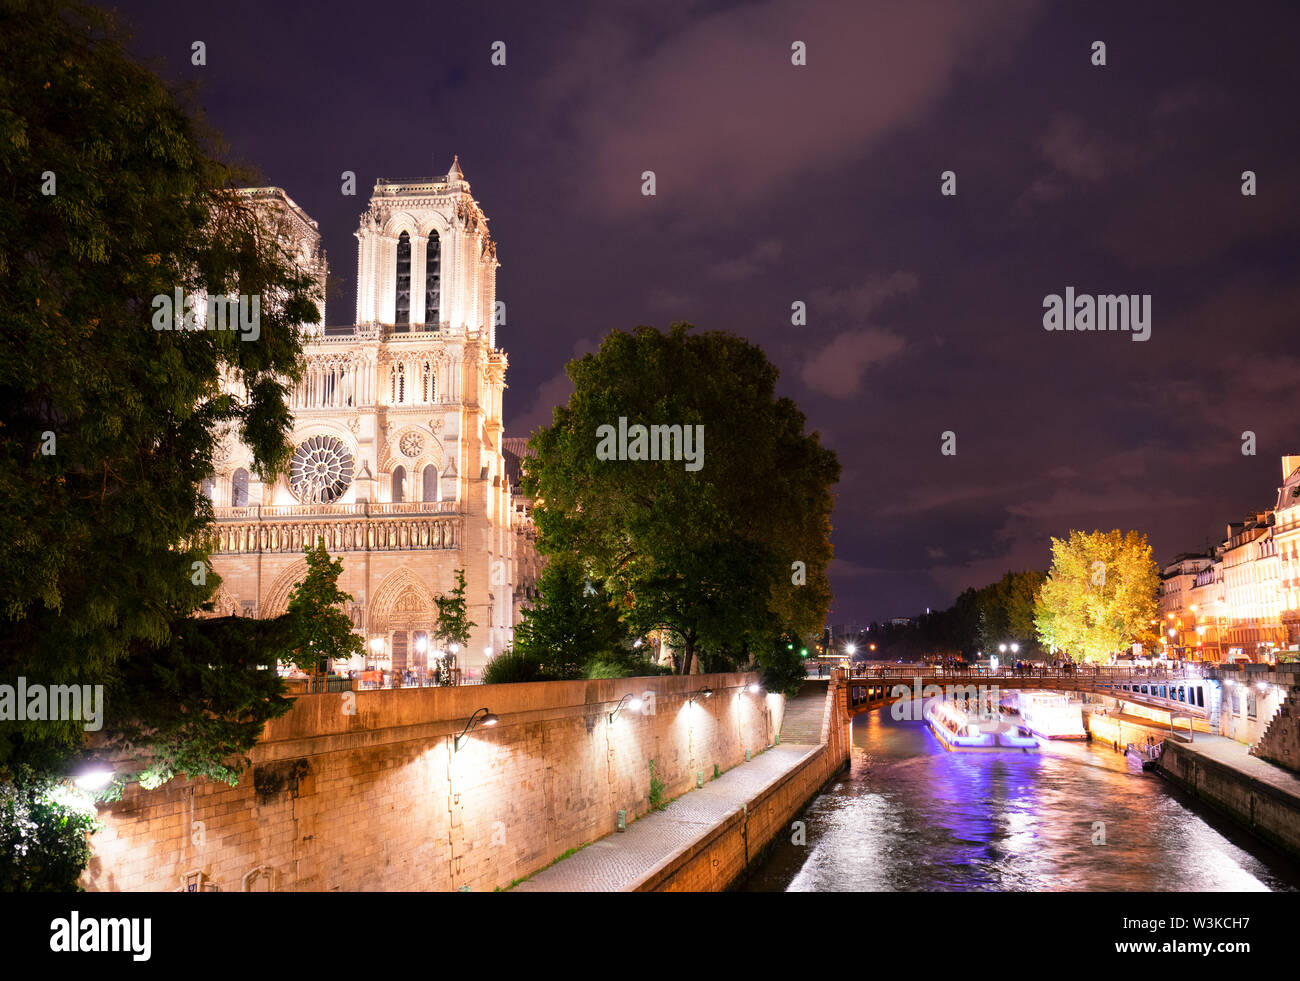 famous Notre Dame cathedral over the Seine river illuminated at night, Paris, France - Stock Image